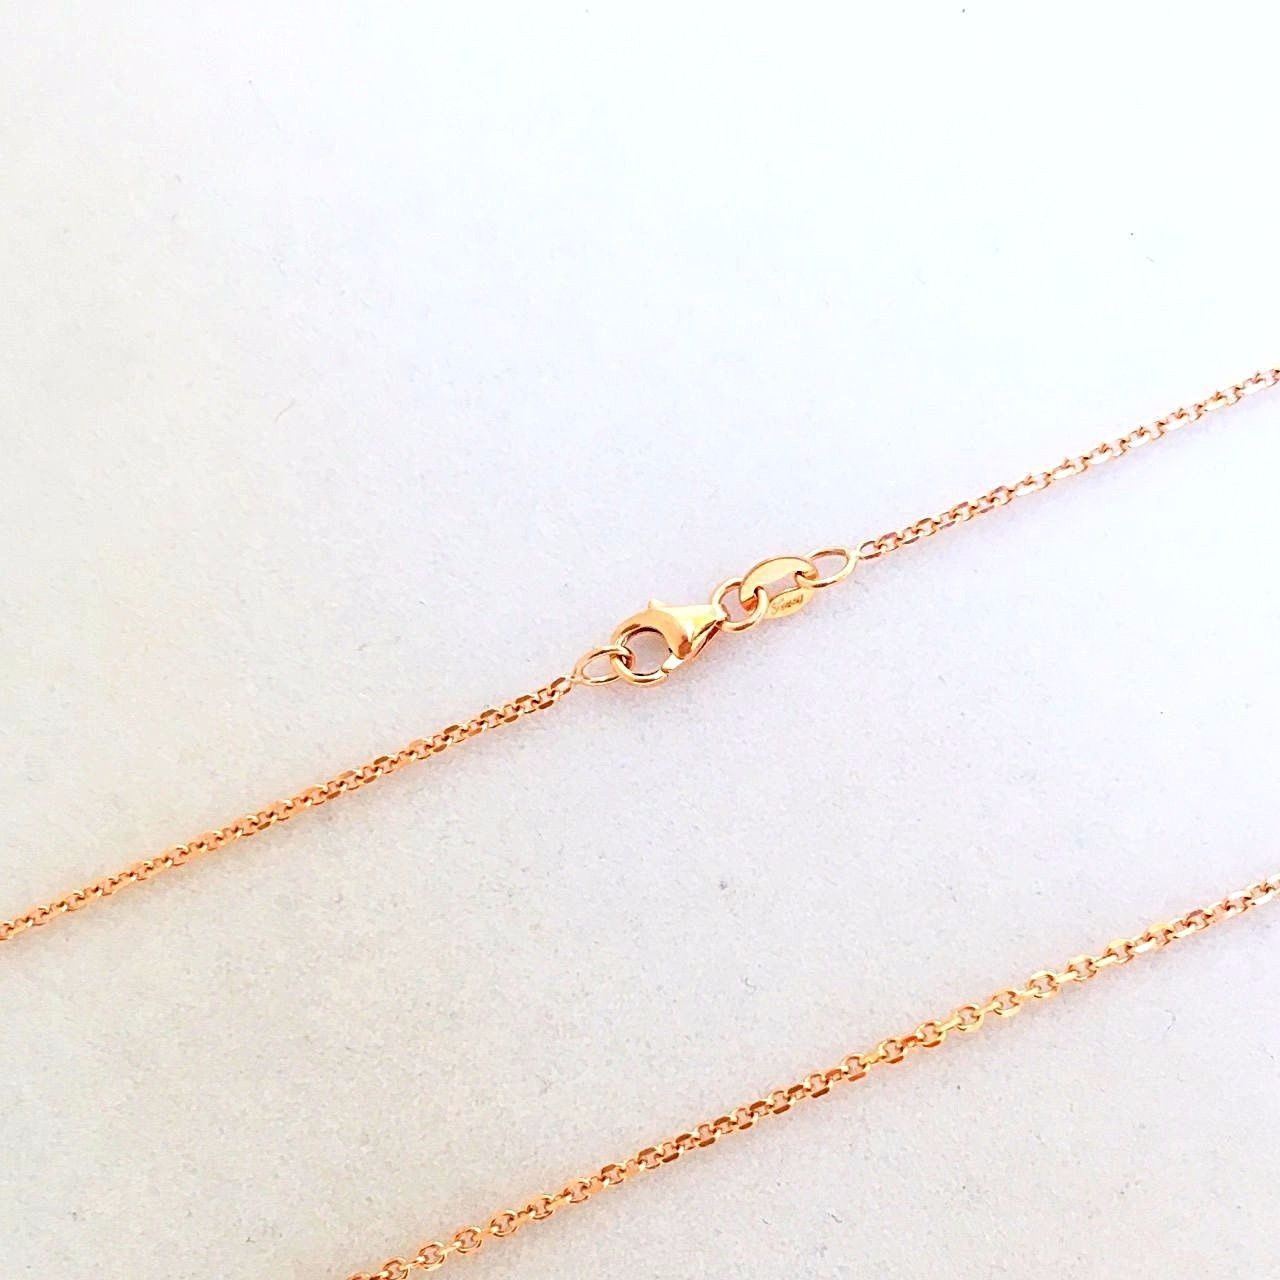 20 inch 14K rose gold cable chain with lobster clasp 2.8 grams $390